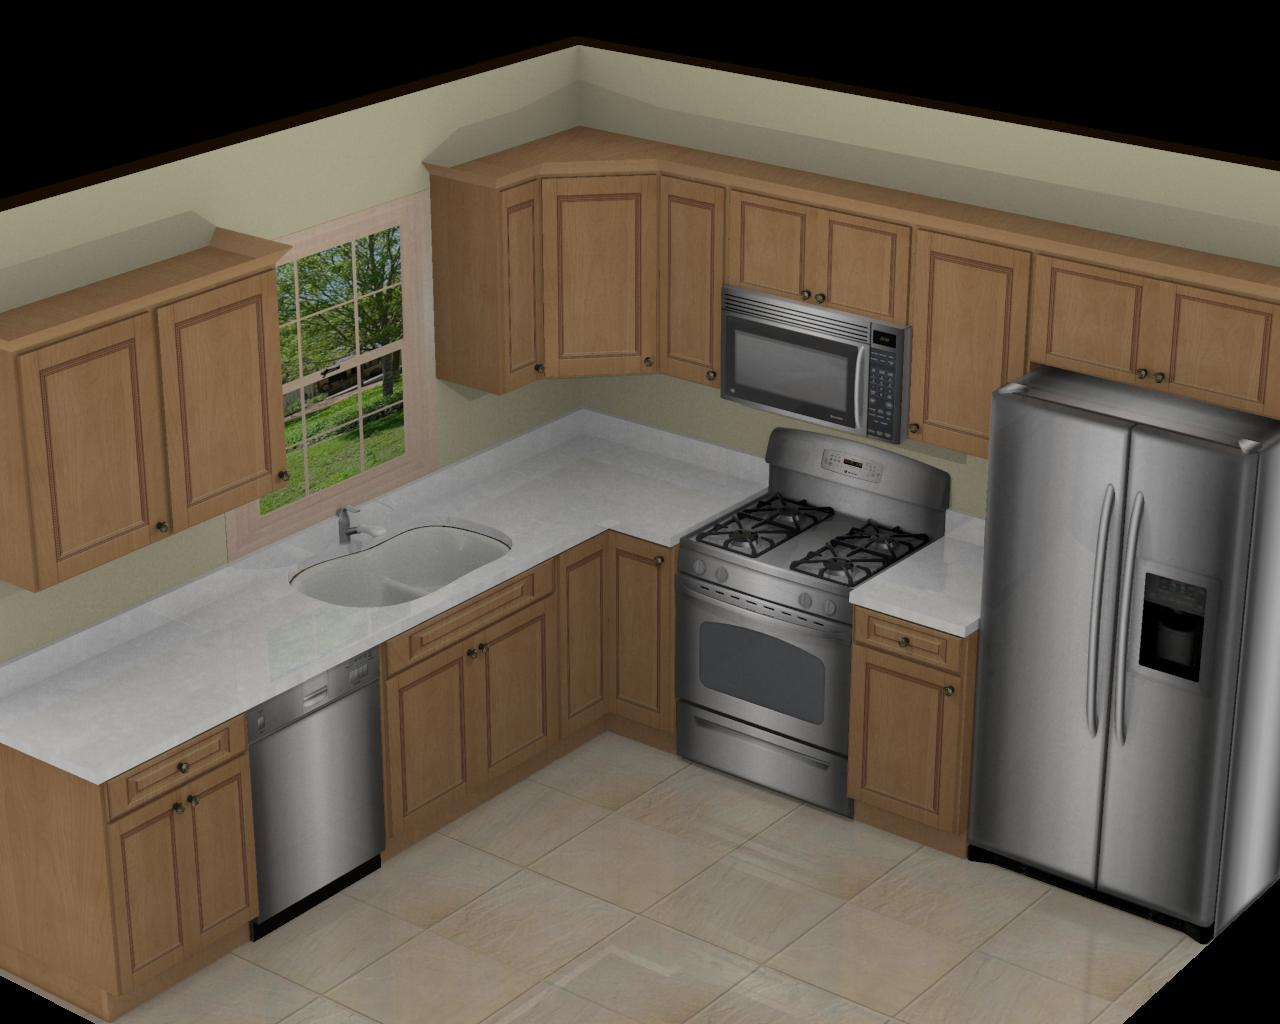 Foundation dezin decor 3d kitchen model design - Designs of kitchen ...